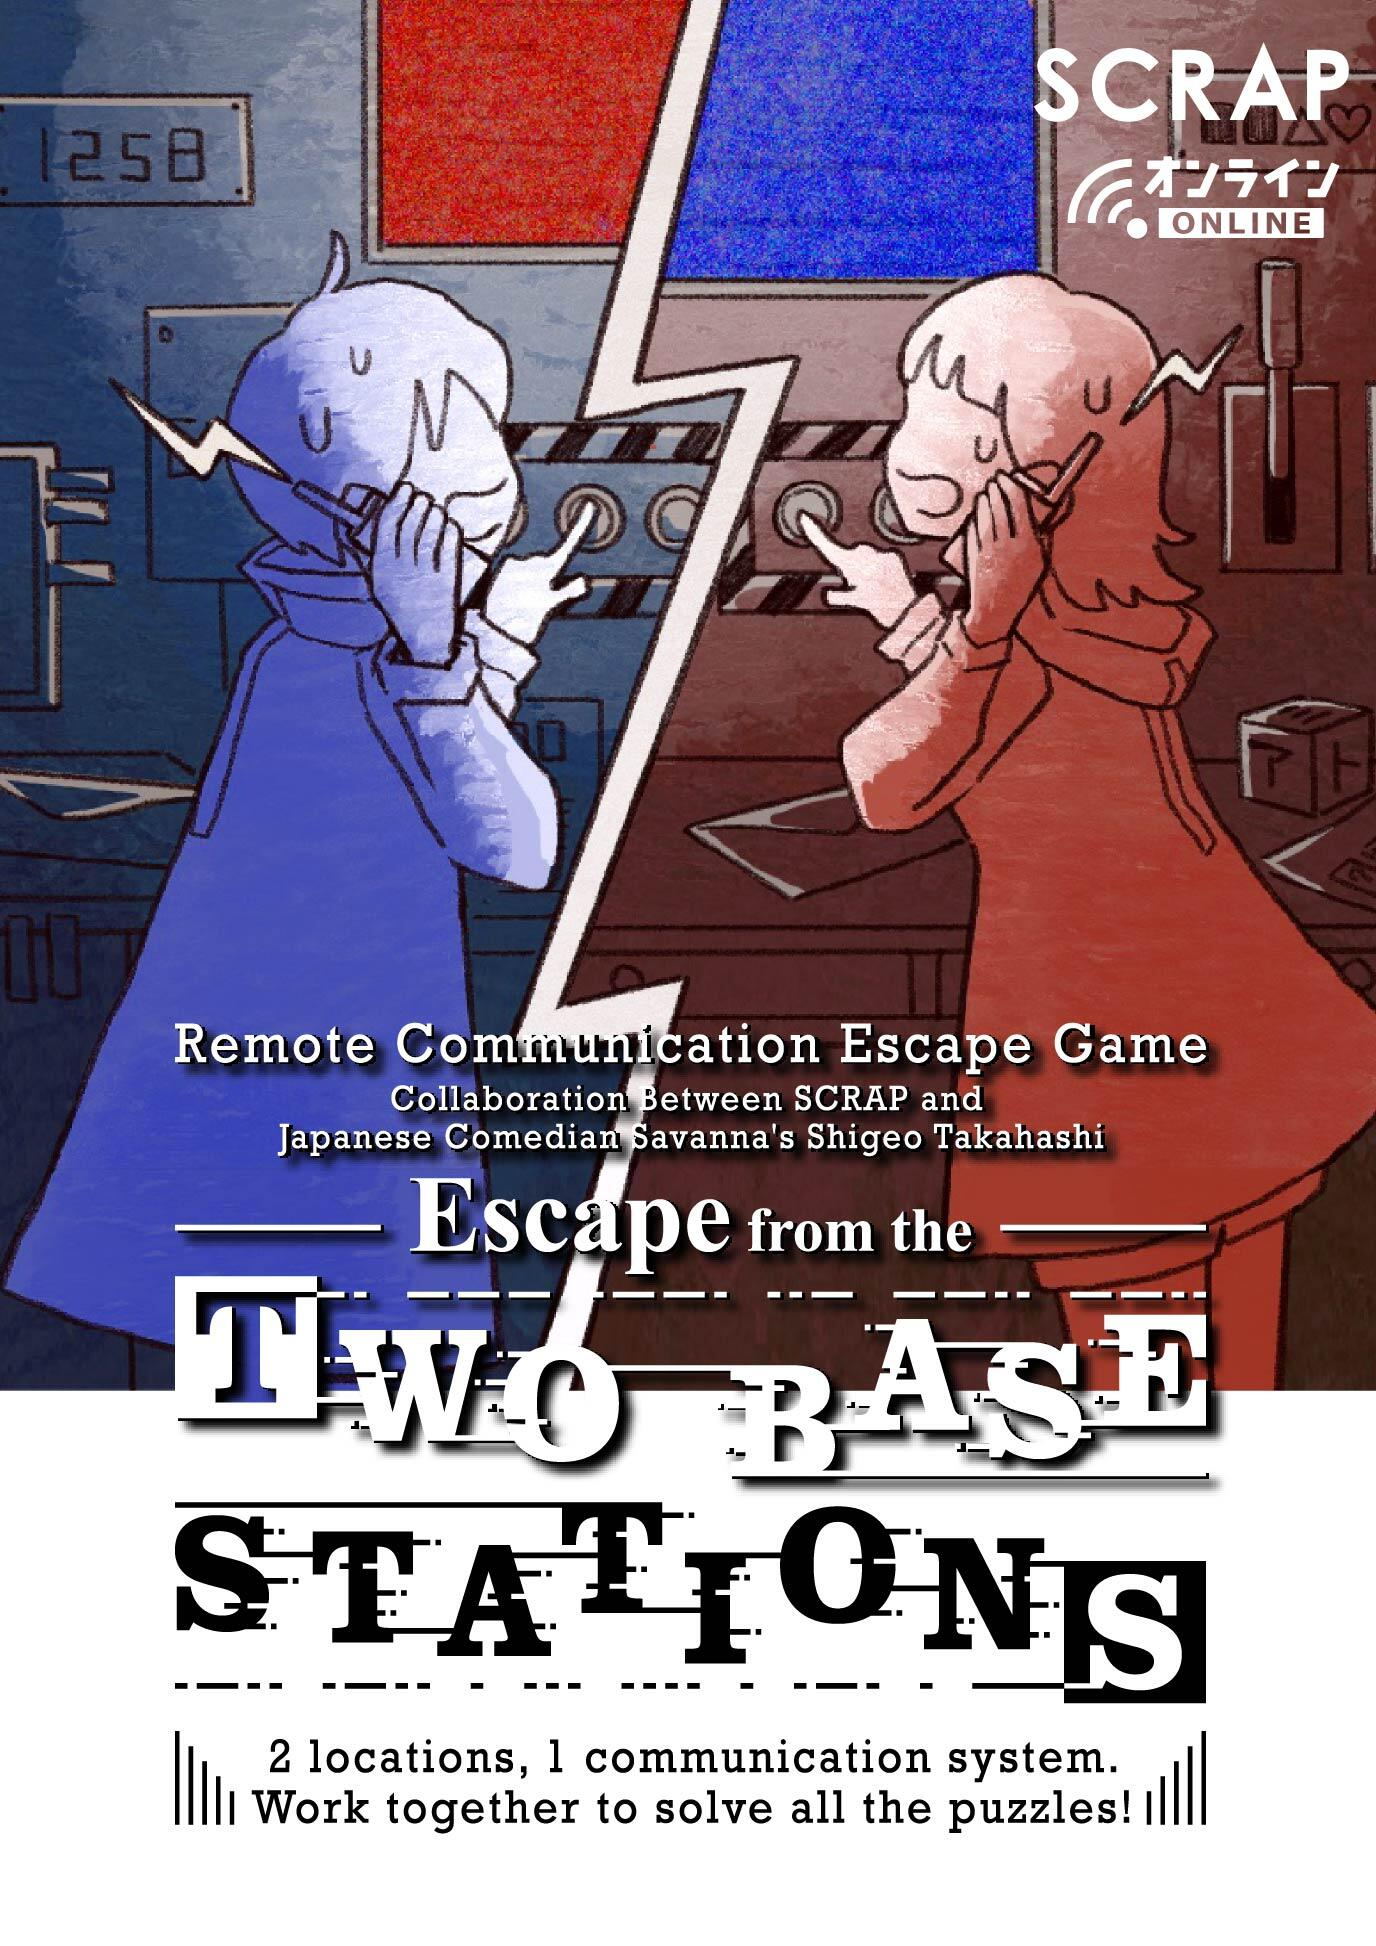 Escape from the Two Base Stations